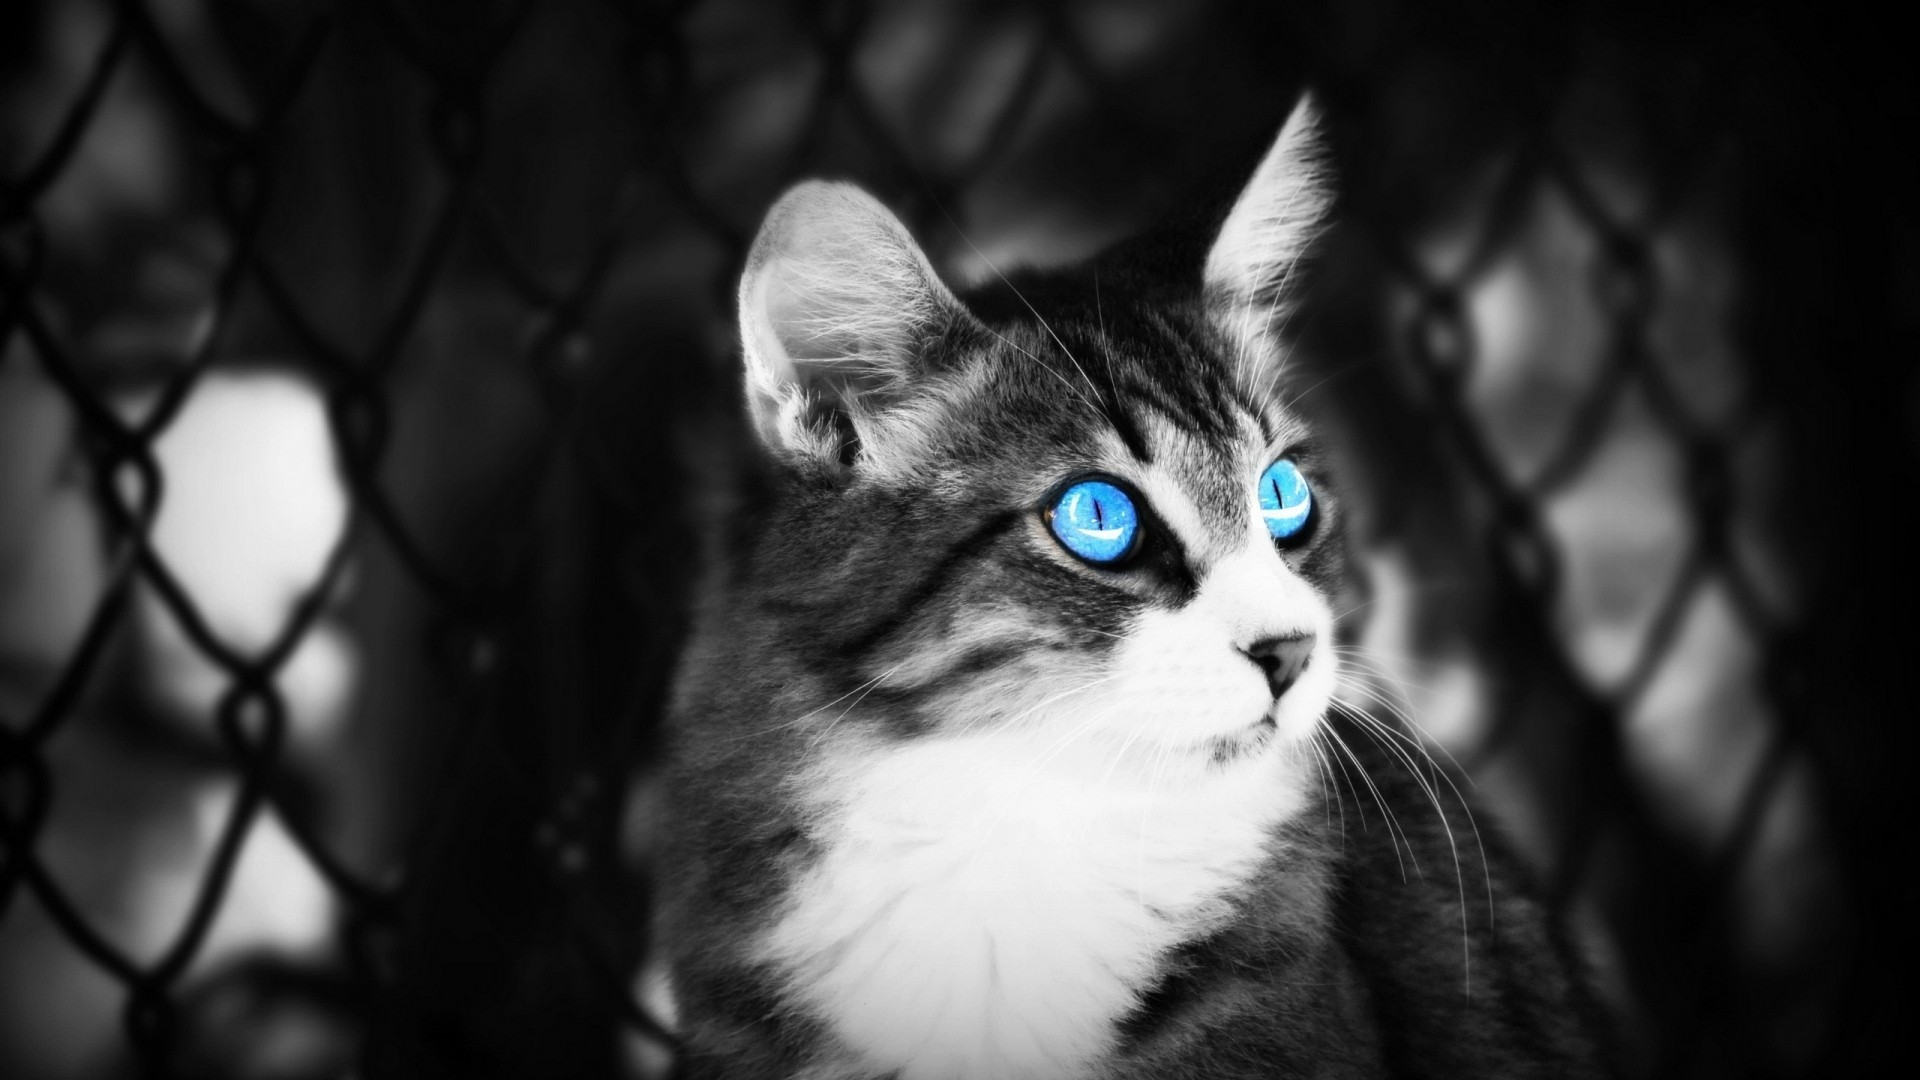 Blue Eyes Cat Black and White HD Wallpaper